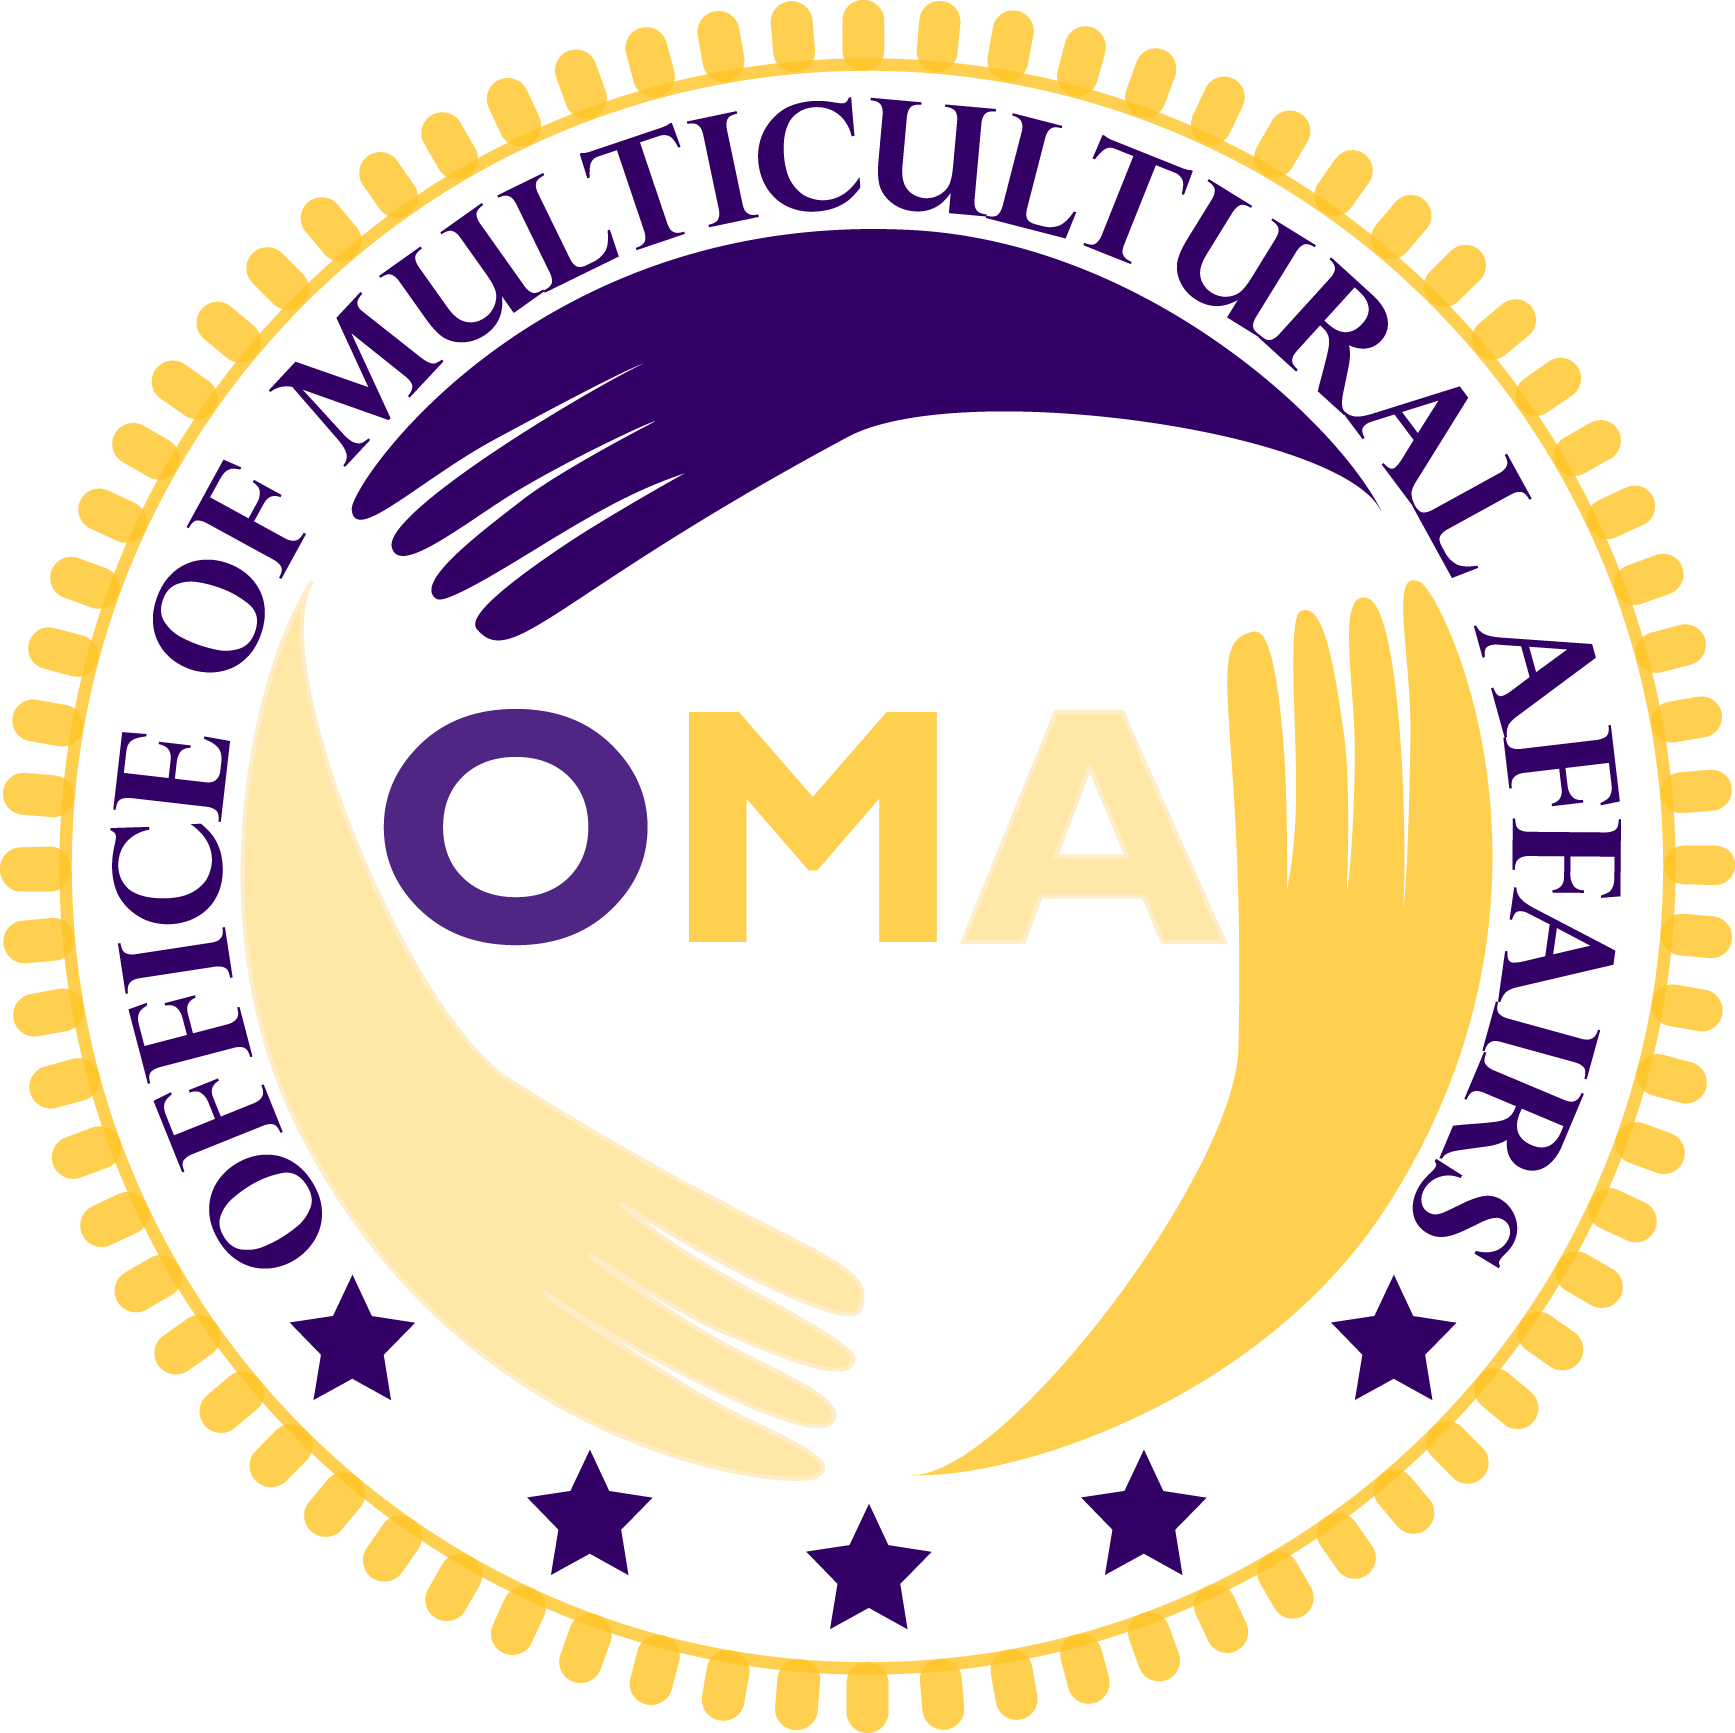 Prairie view a & m panther vector png. Multicultural affairs pvamu site